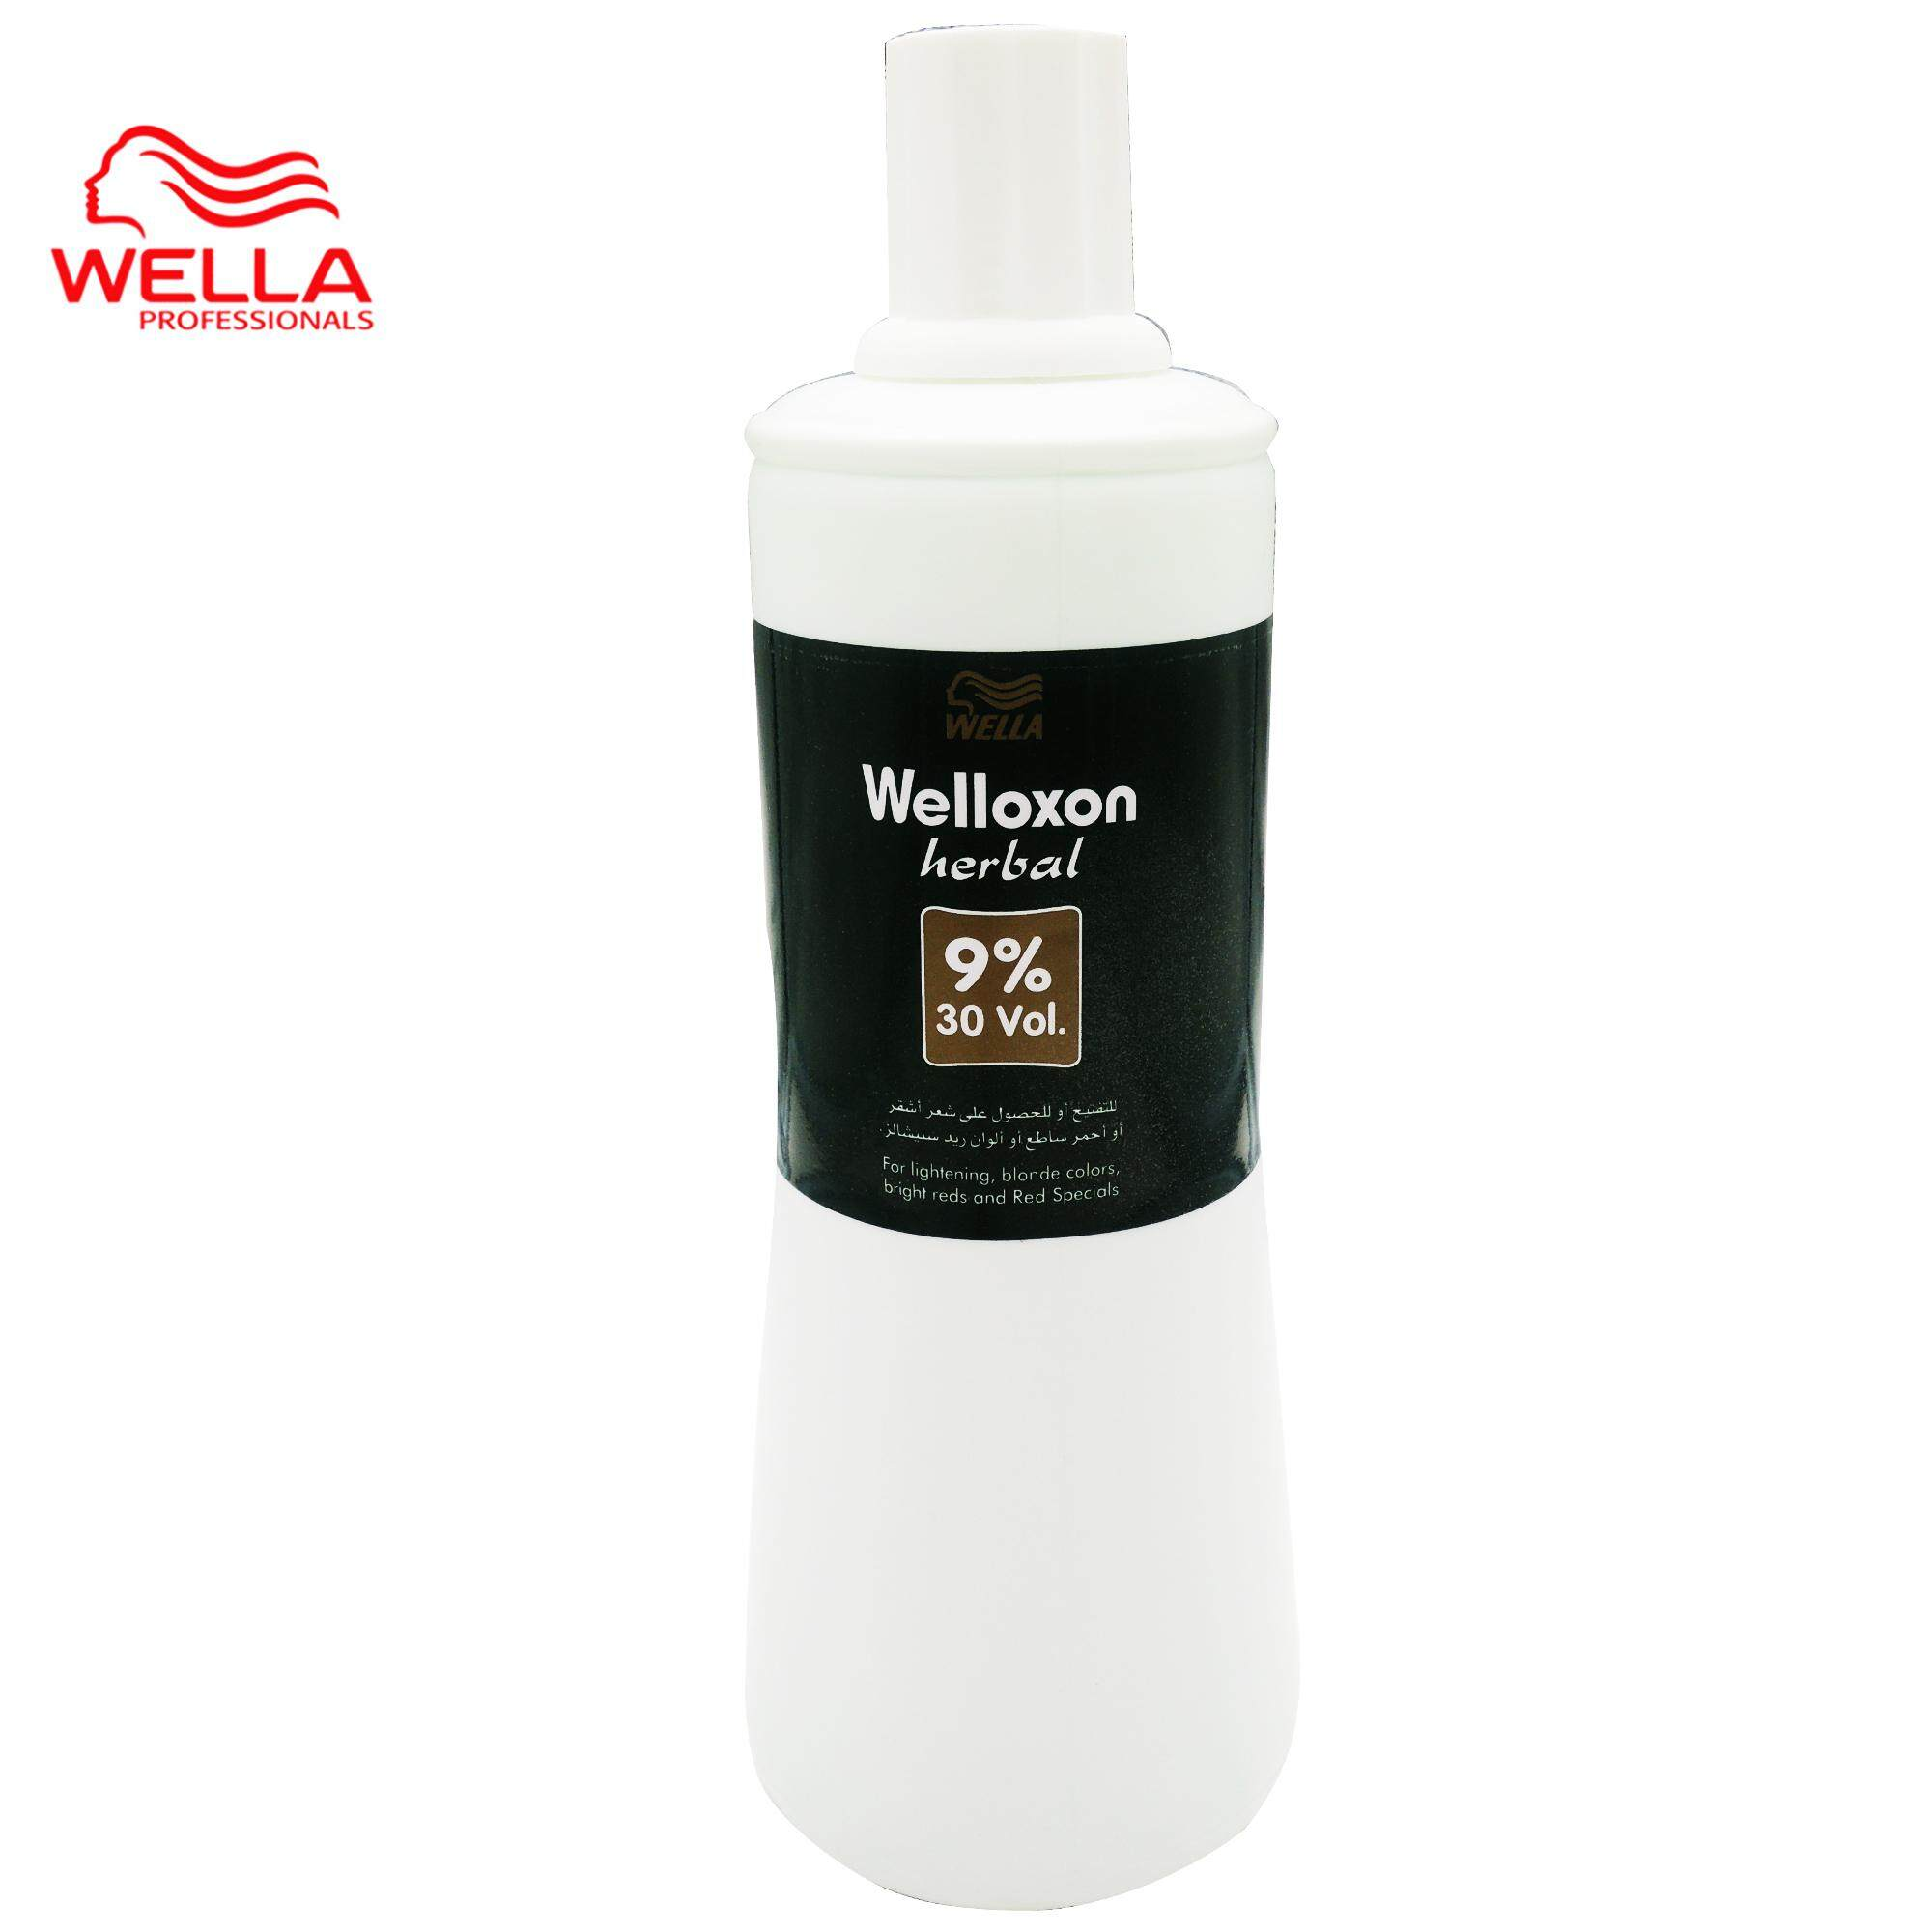 Wella Hair Care - Hair Coloring price in Malaysia - Best Wella Hair ...